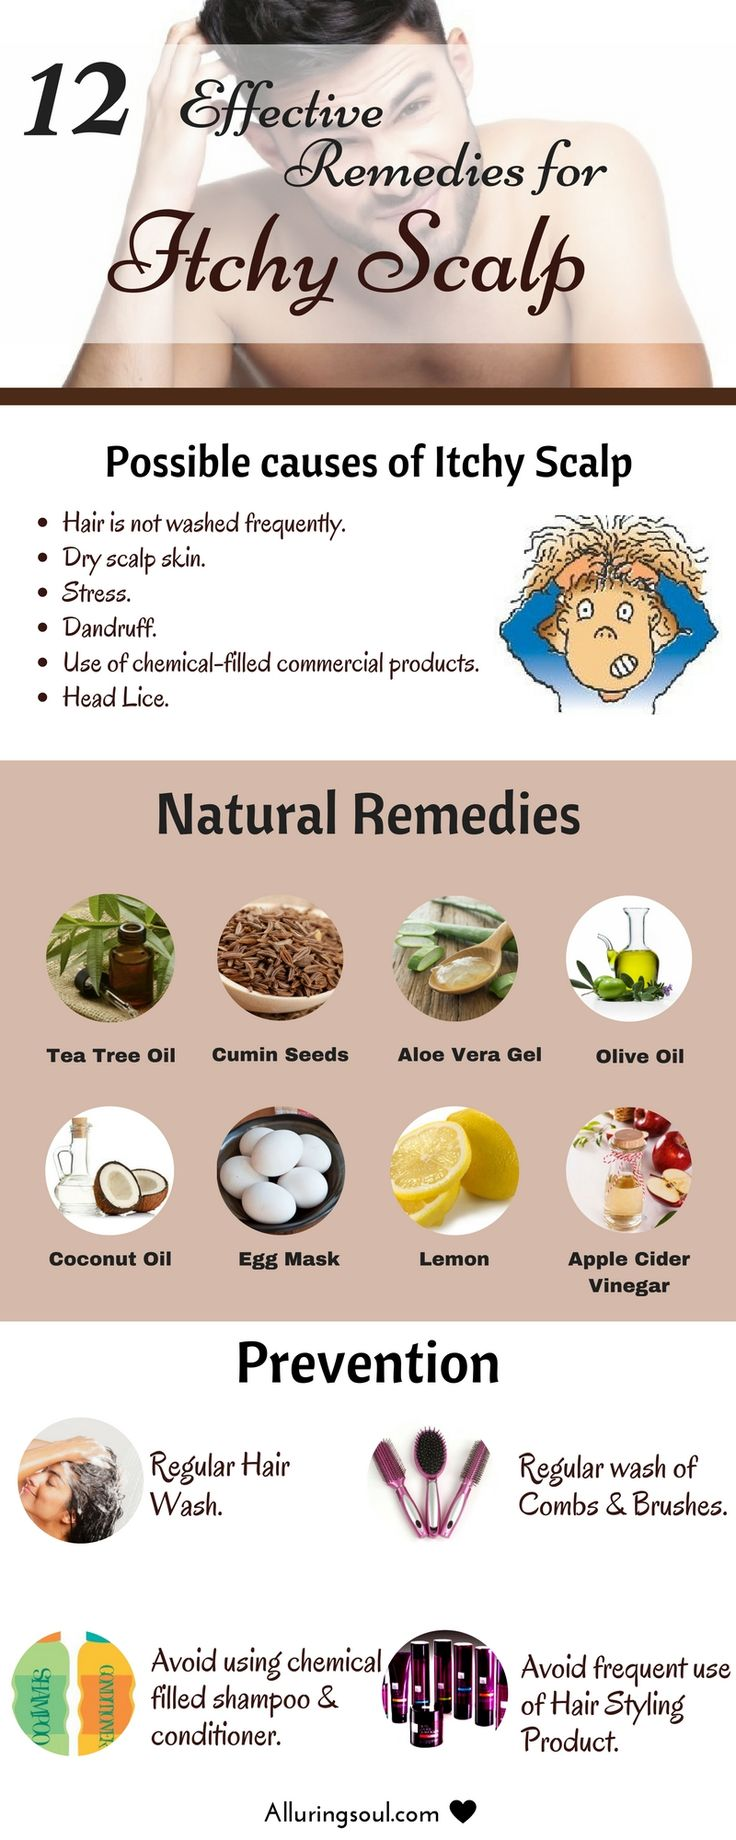 Remedies for itchy scalp - Itchy scalp can be embarrassing and frustrating becau...